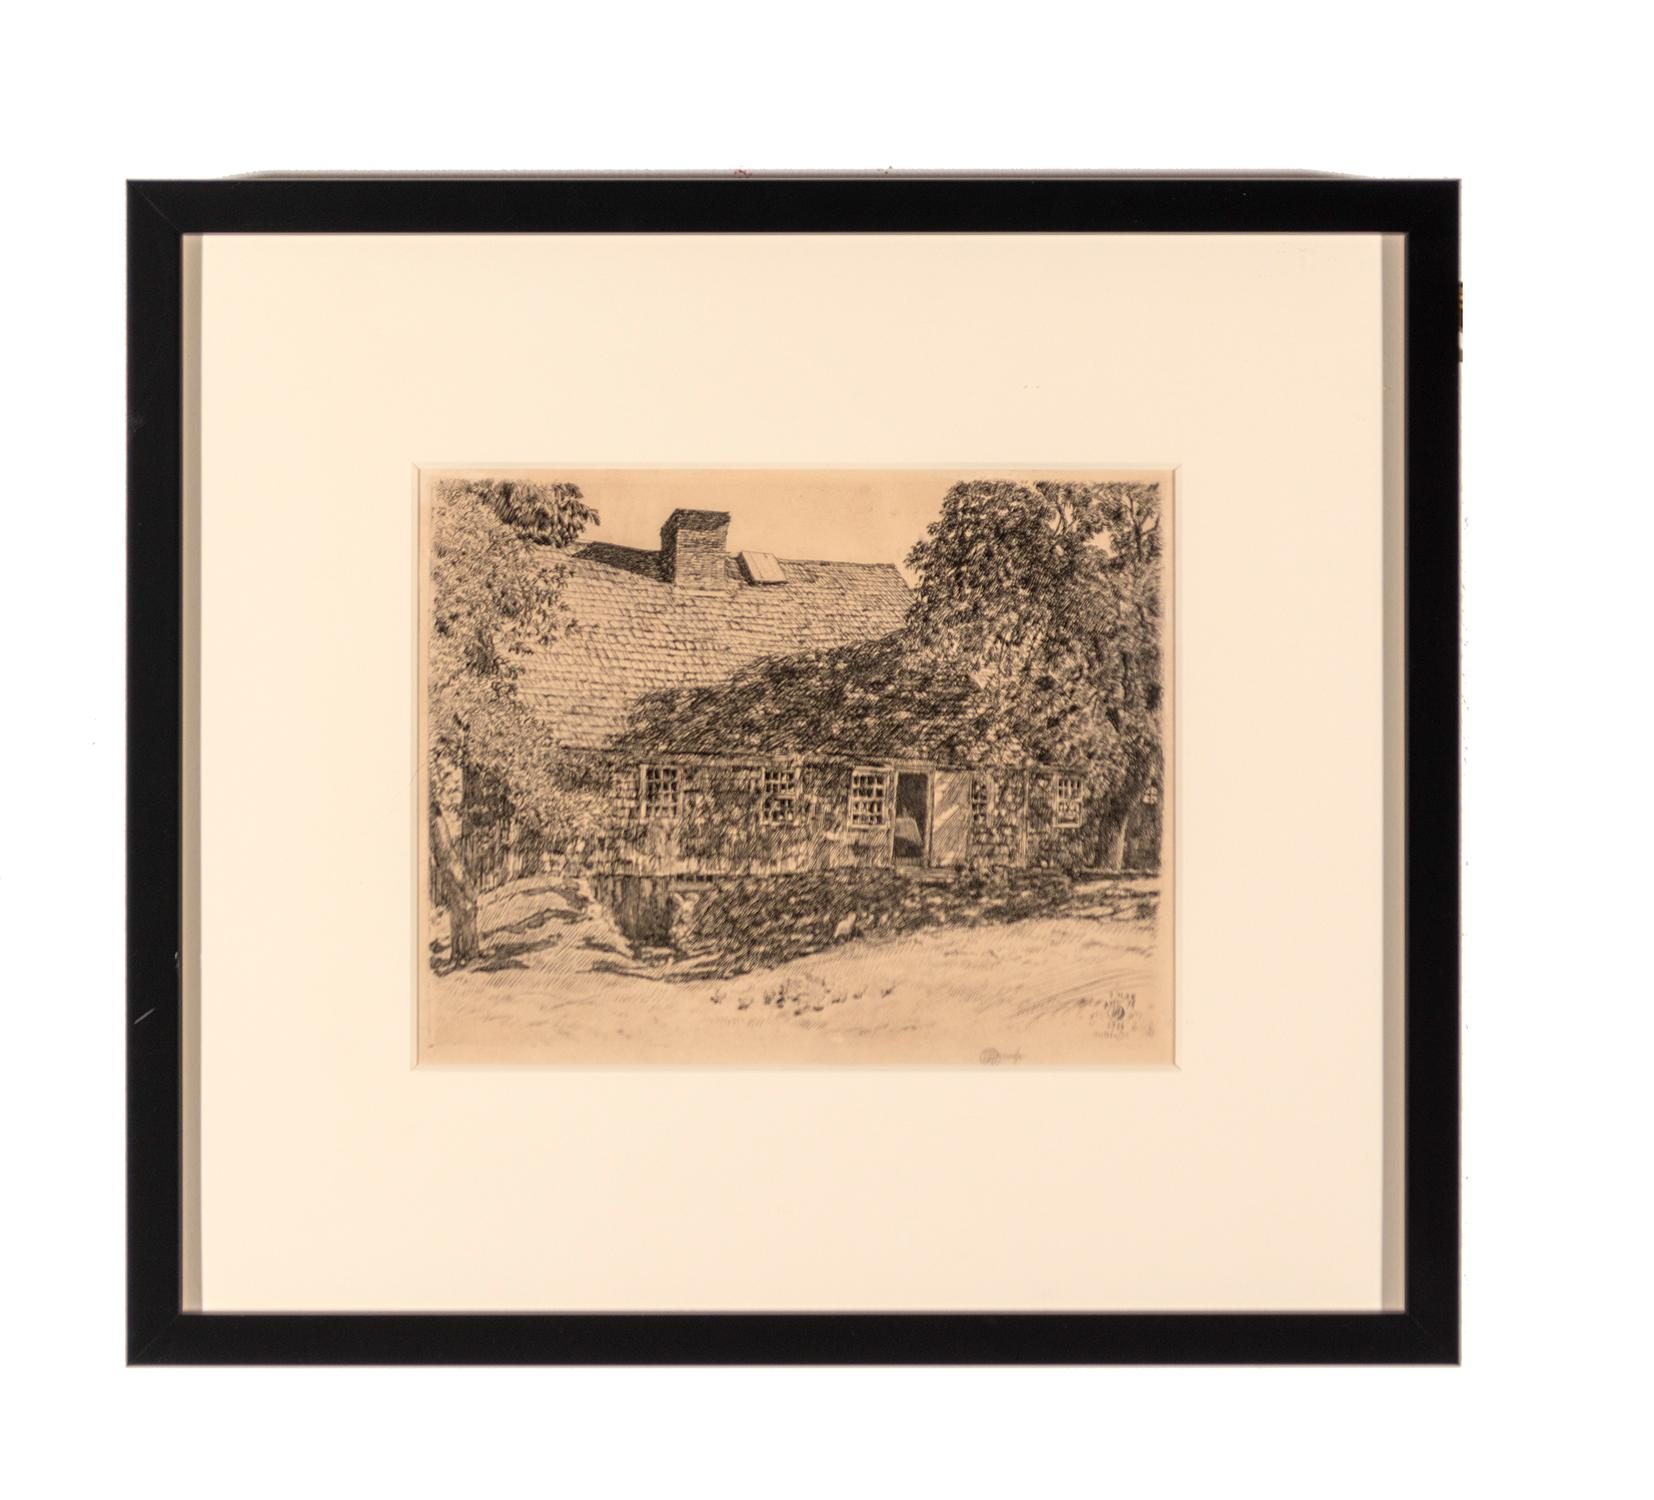 Childe Hassam (1859–1935) United States, The Old Mumford House, 1926, Etching, Bequest of Dr. Maurice A. Alberti [2014.11.27]